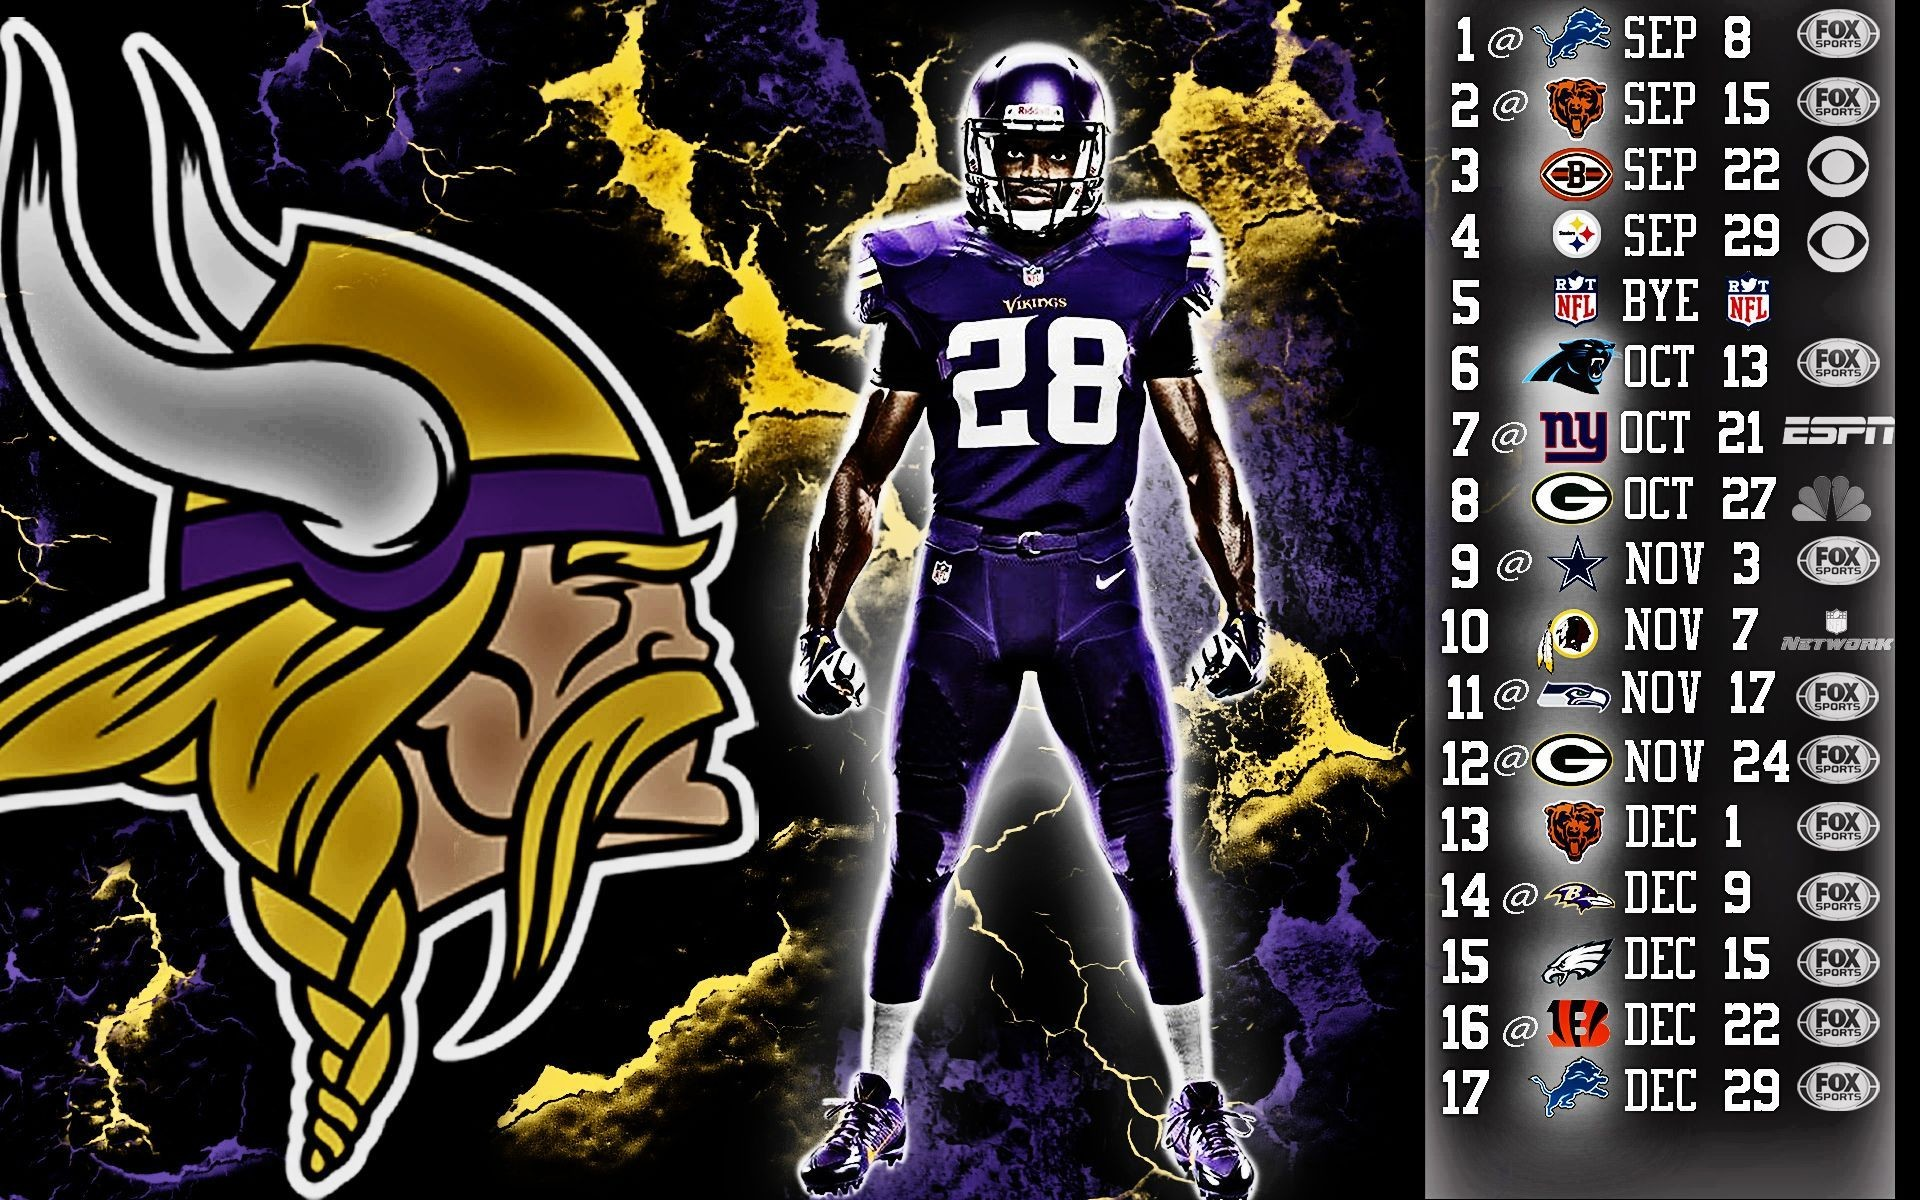 Football teams wallpapers 2013